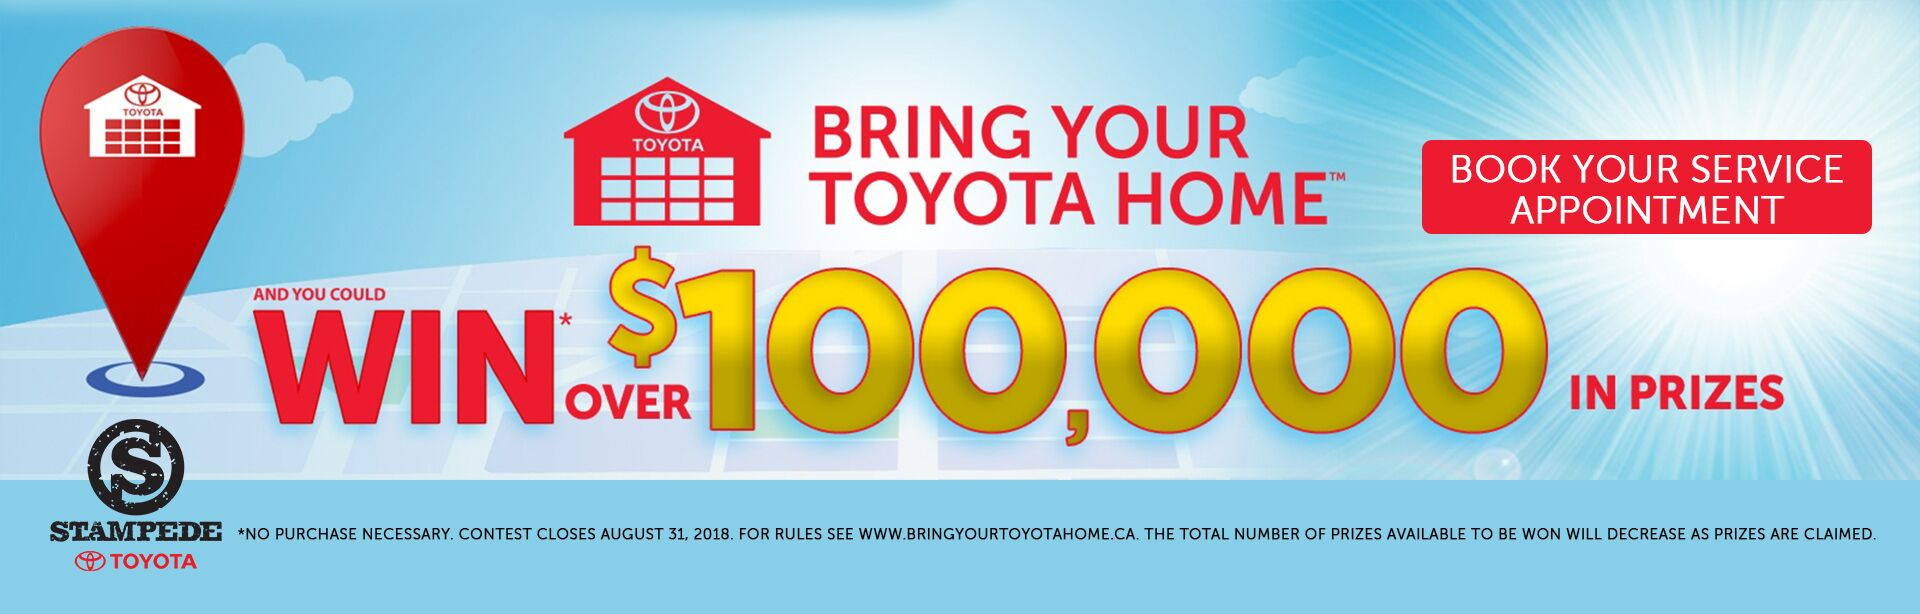 Bring Your Toyota Home